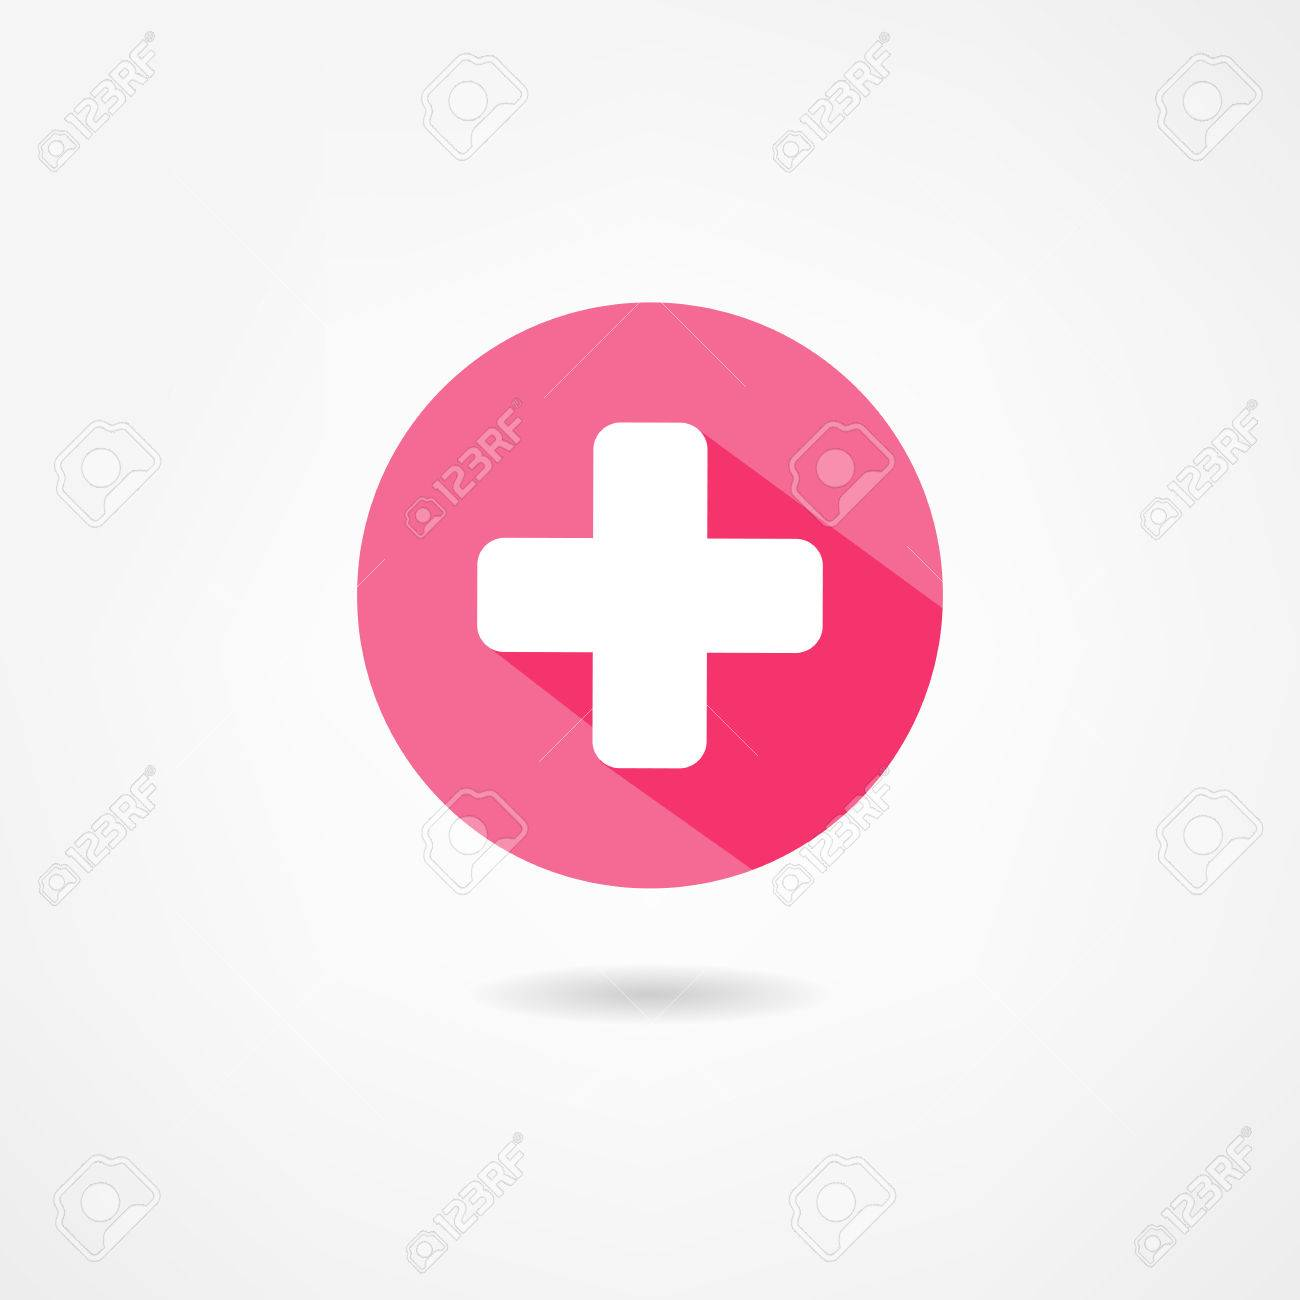 medicine icon Stock Vector - 22661028